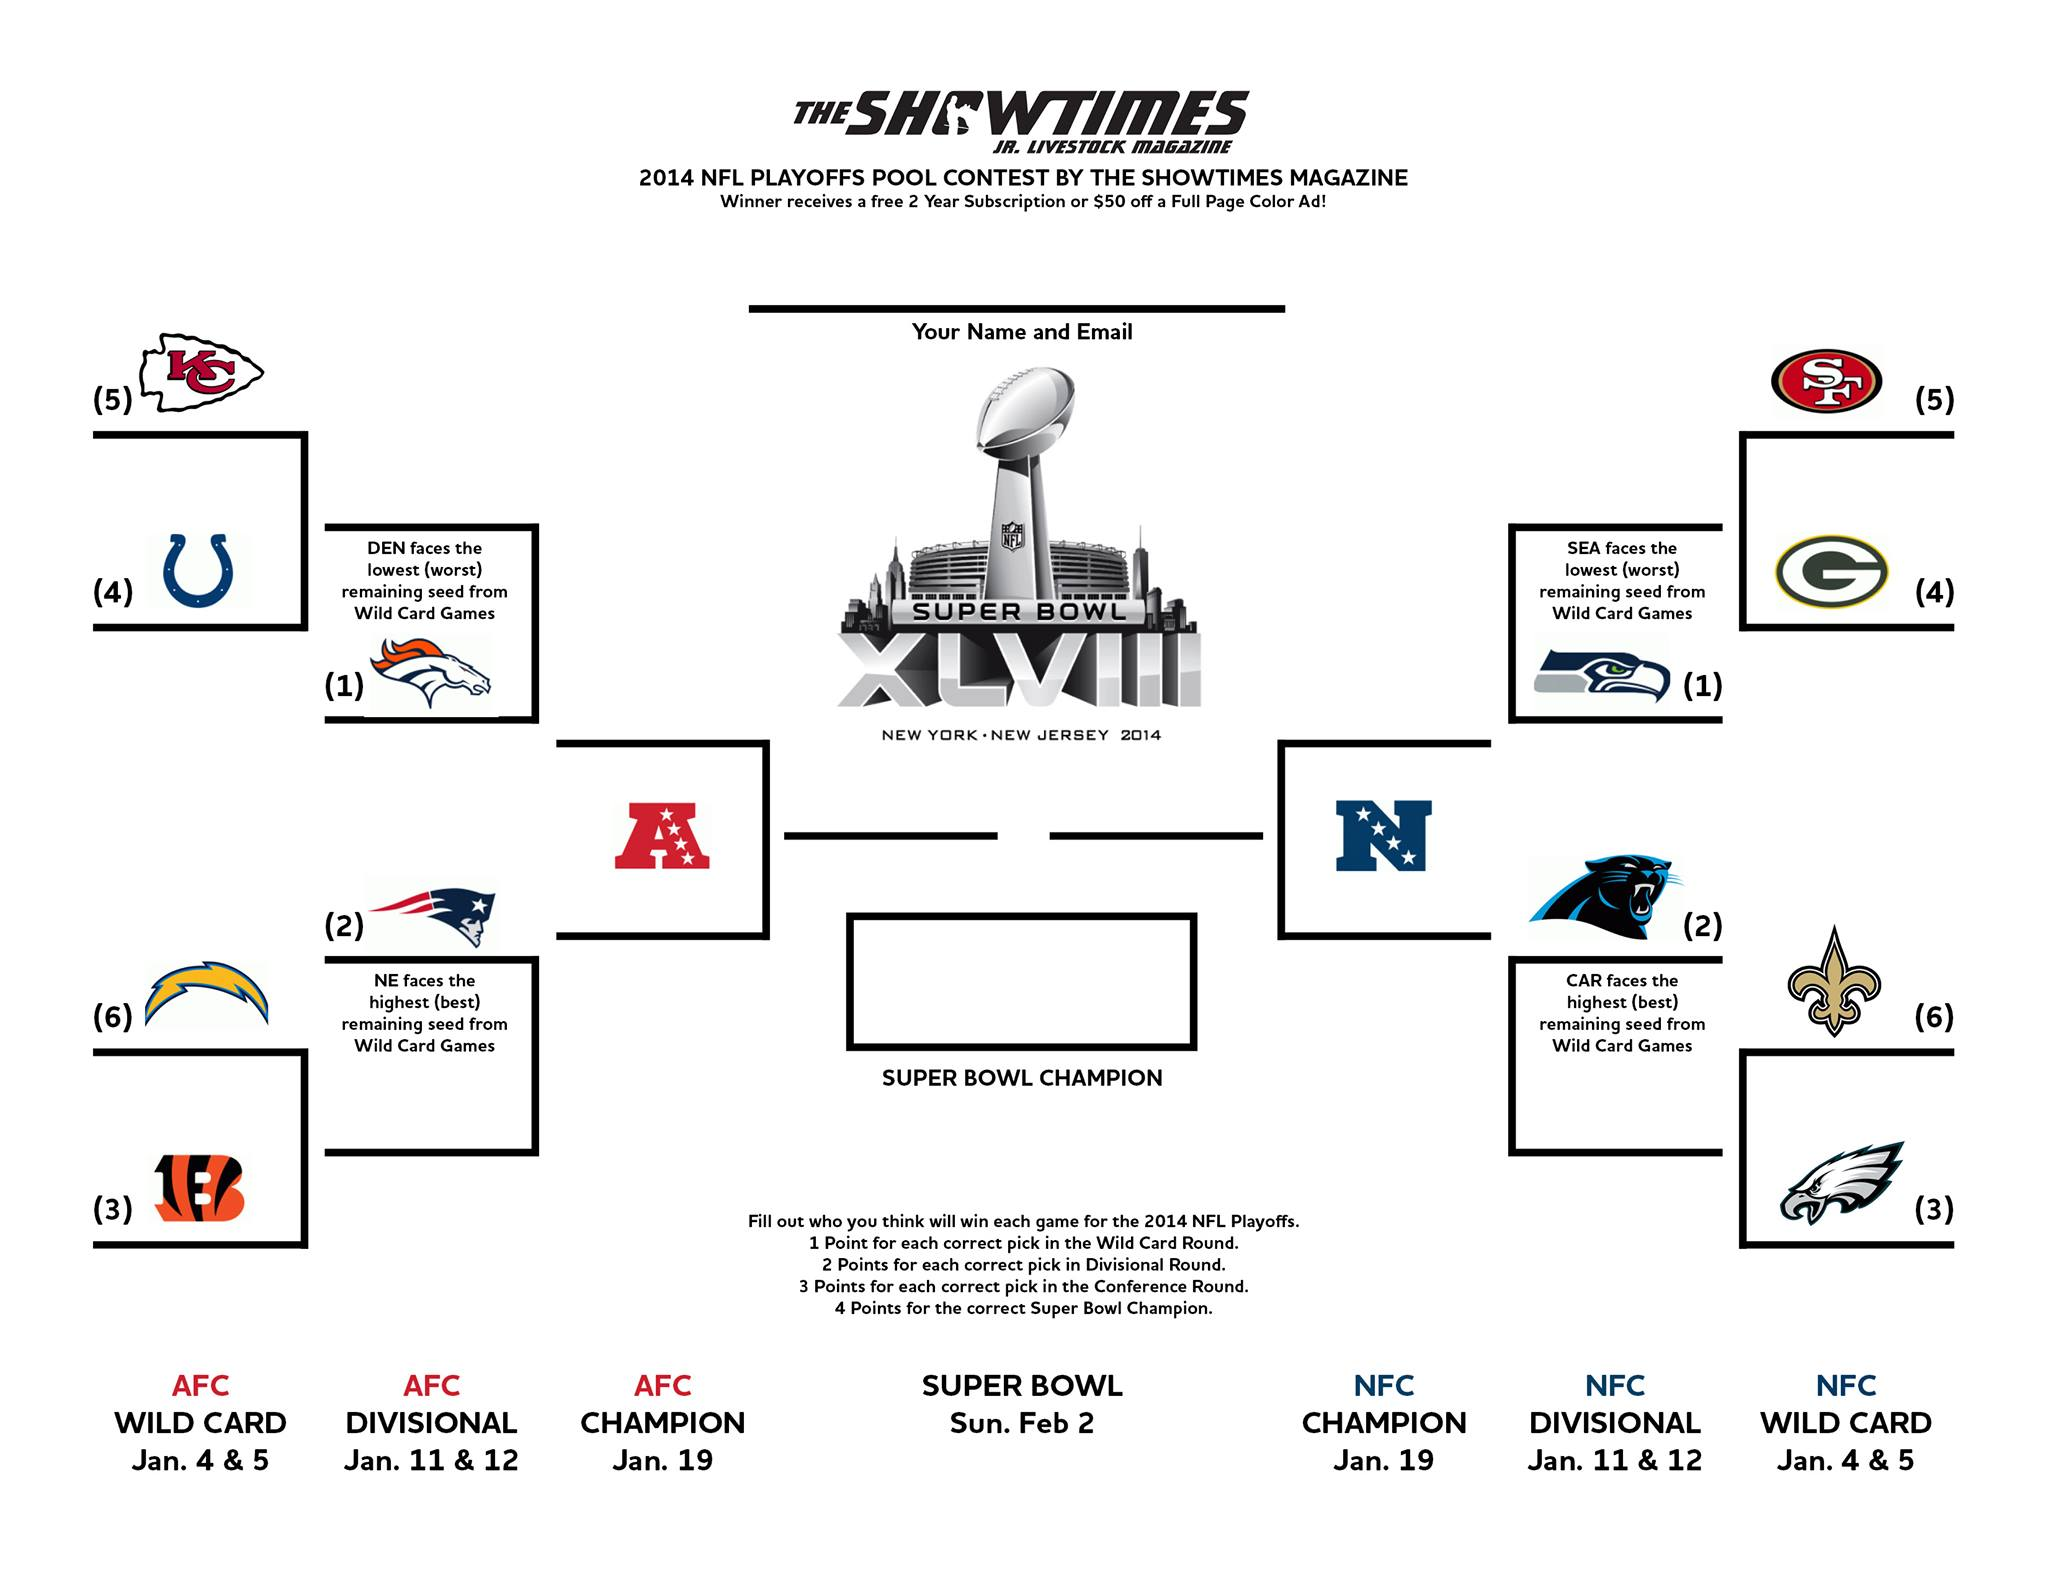 Nfl Playoff Contest From The Showtimes Jr Livestock Magazine Lautner Farms